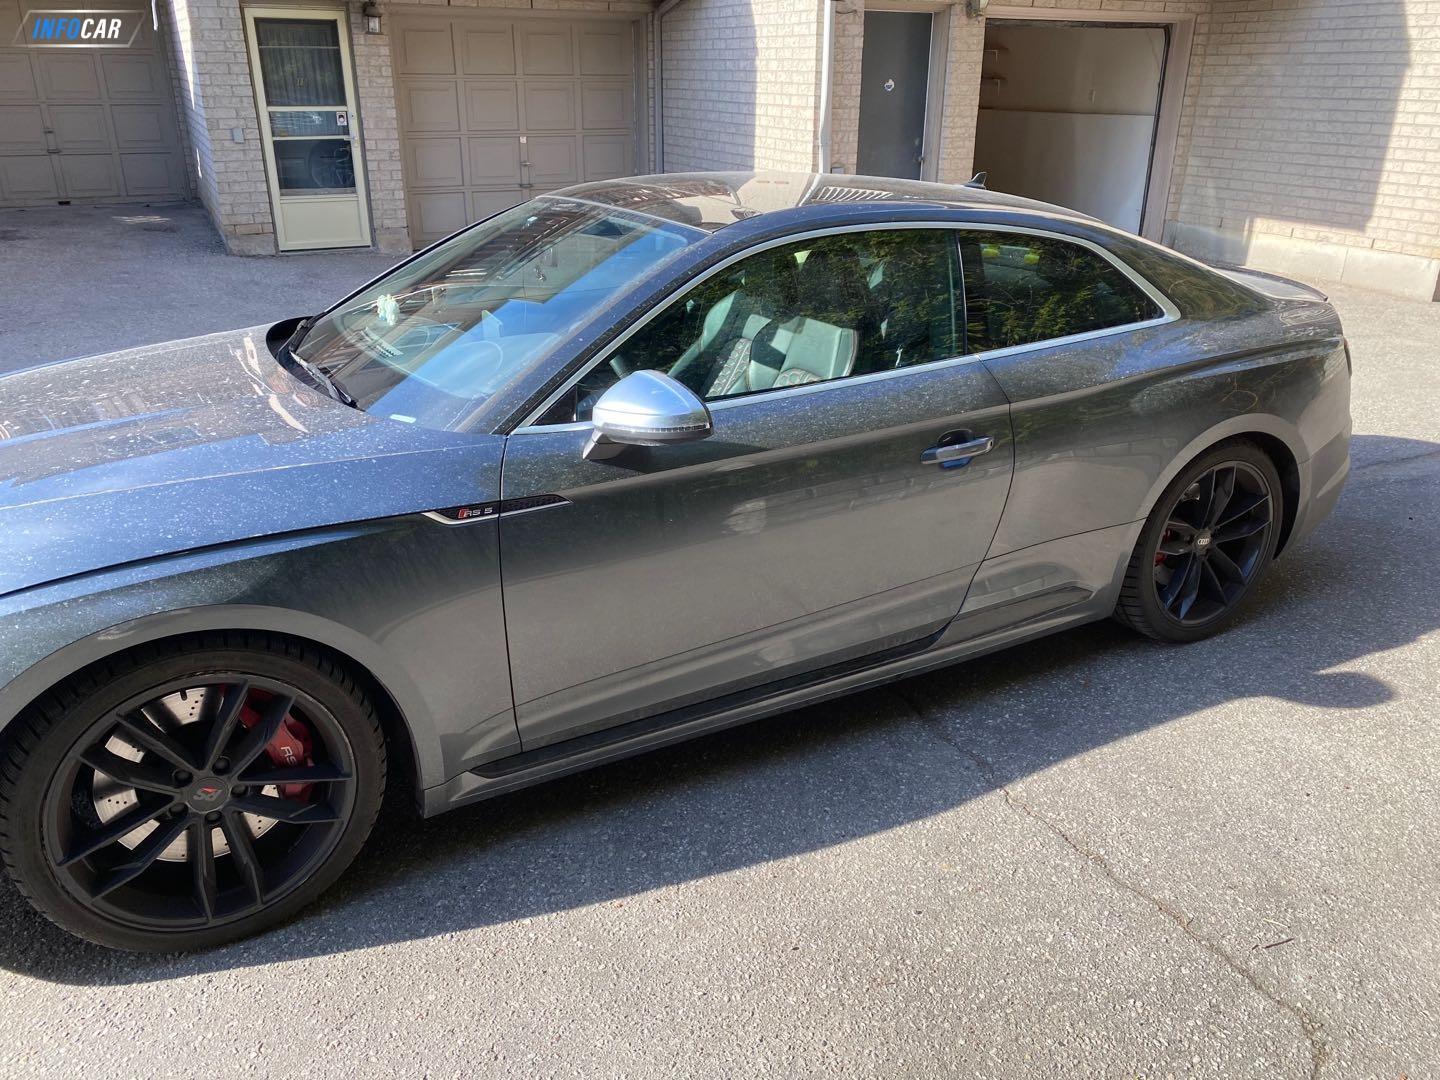 2018 Audi RS 5  - INFOCAR - Toronto's Most Comprehensive New and Used Auto Trading Platform